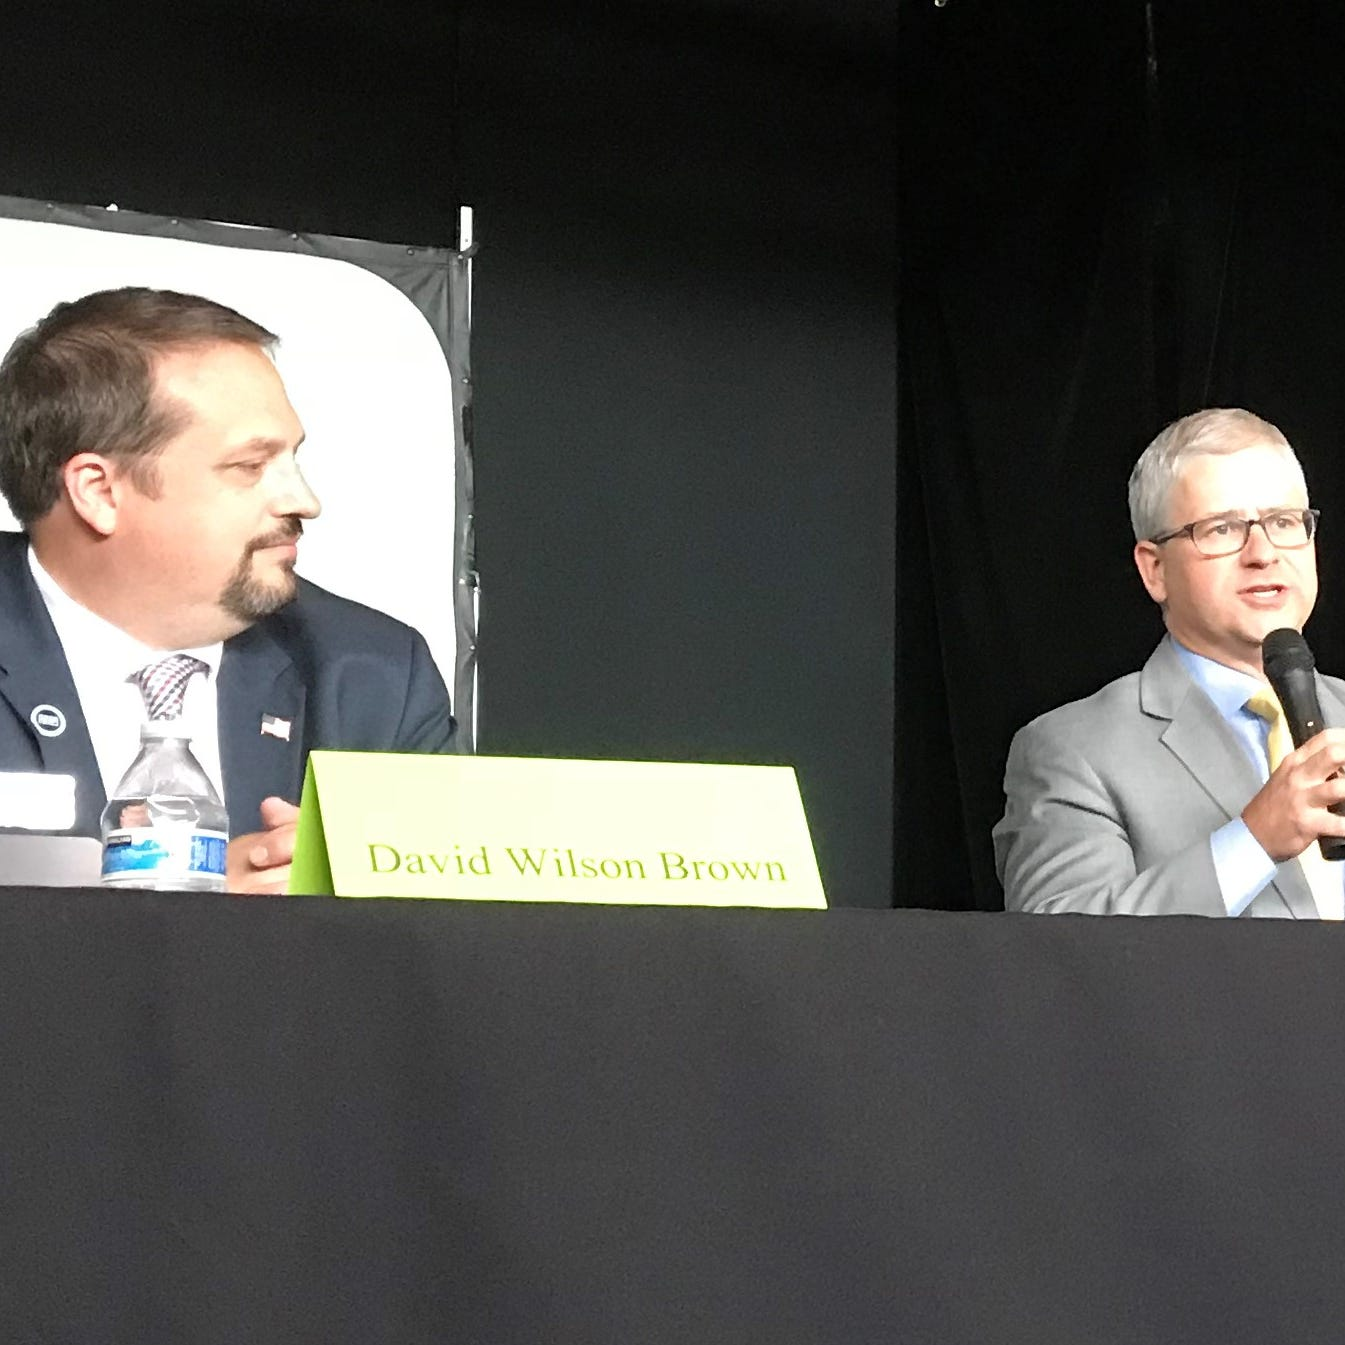 Pelosi, tax cuts, ACA at center of congressional debate between Brown and McHenry